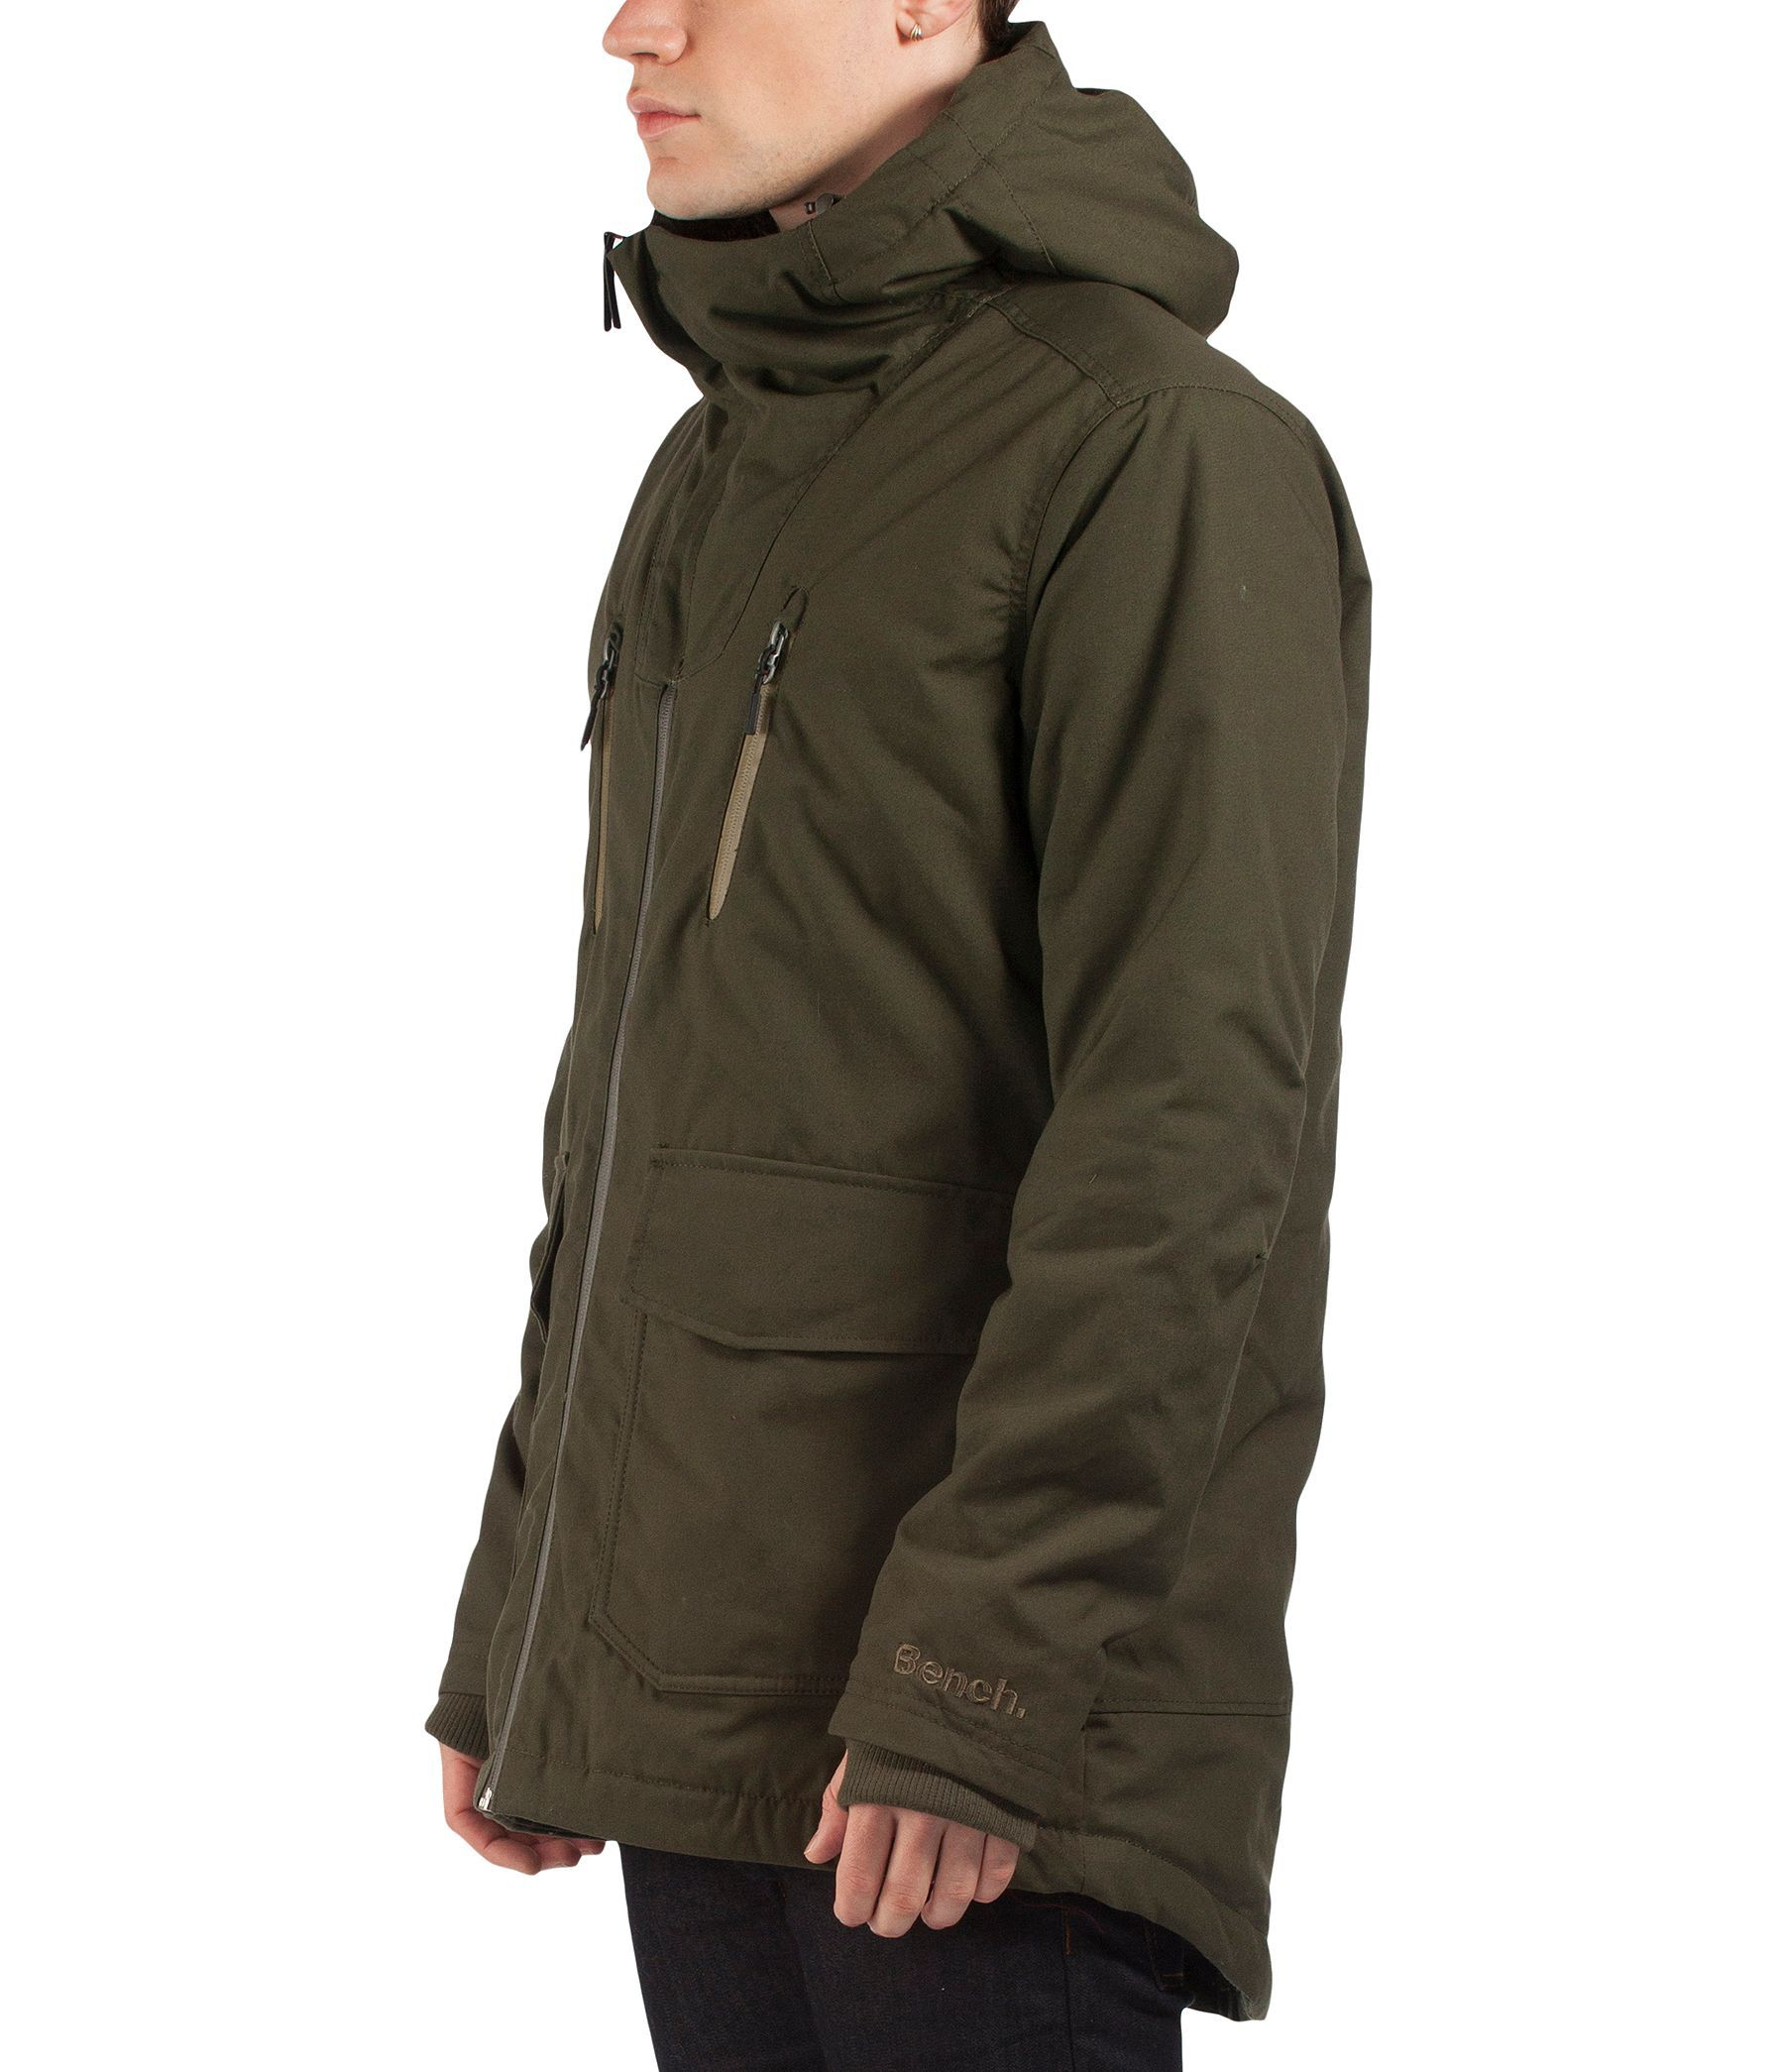 Bench apploud b long zip thru hooded parka jacket in green Bench jacket